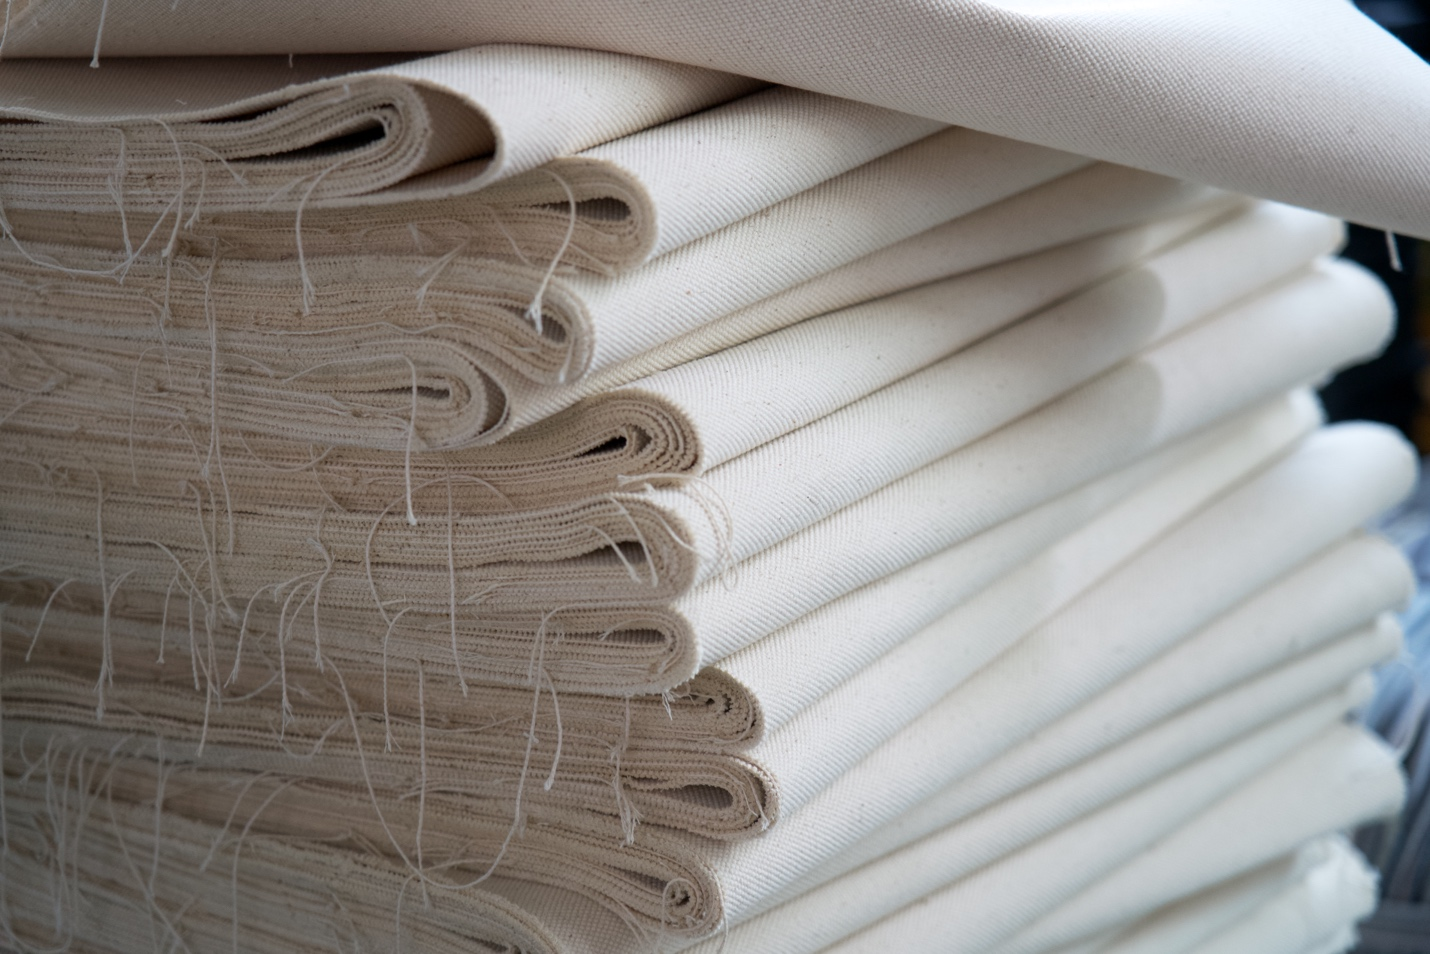 90% of Autron product is using recycled cotton, recycled nylon, recycled polyester, recycled vegan leather, and other possible recycled materials.